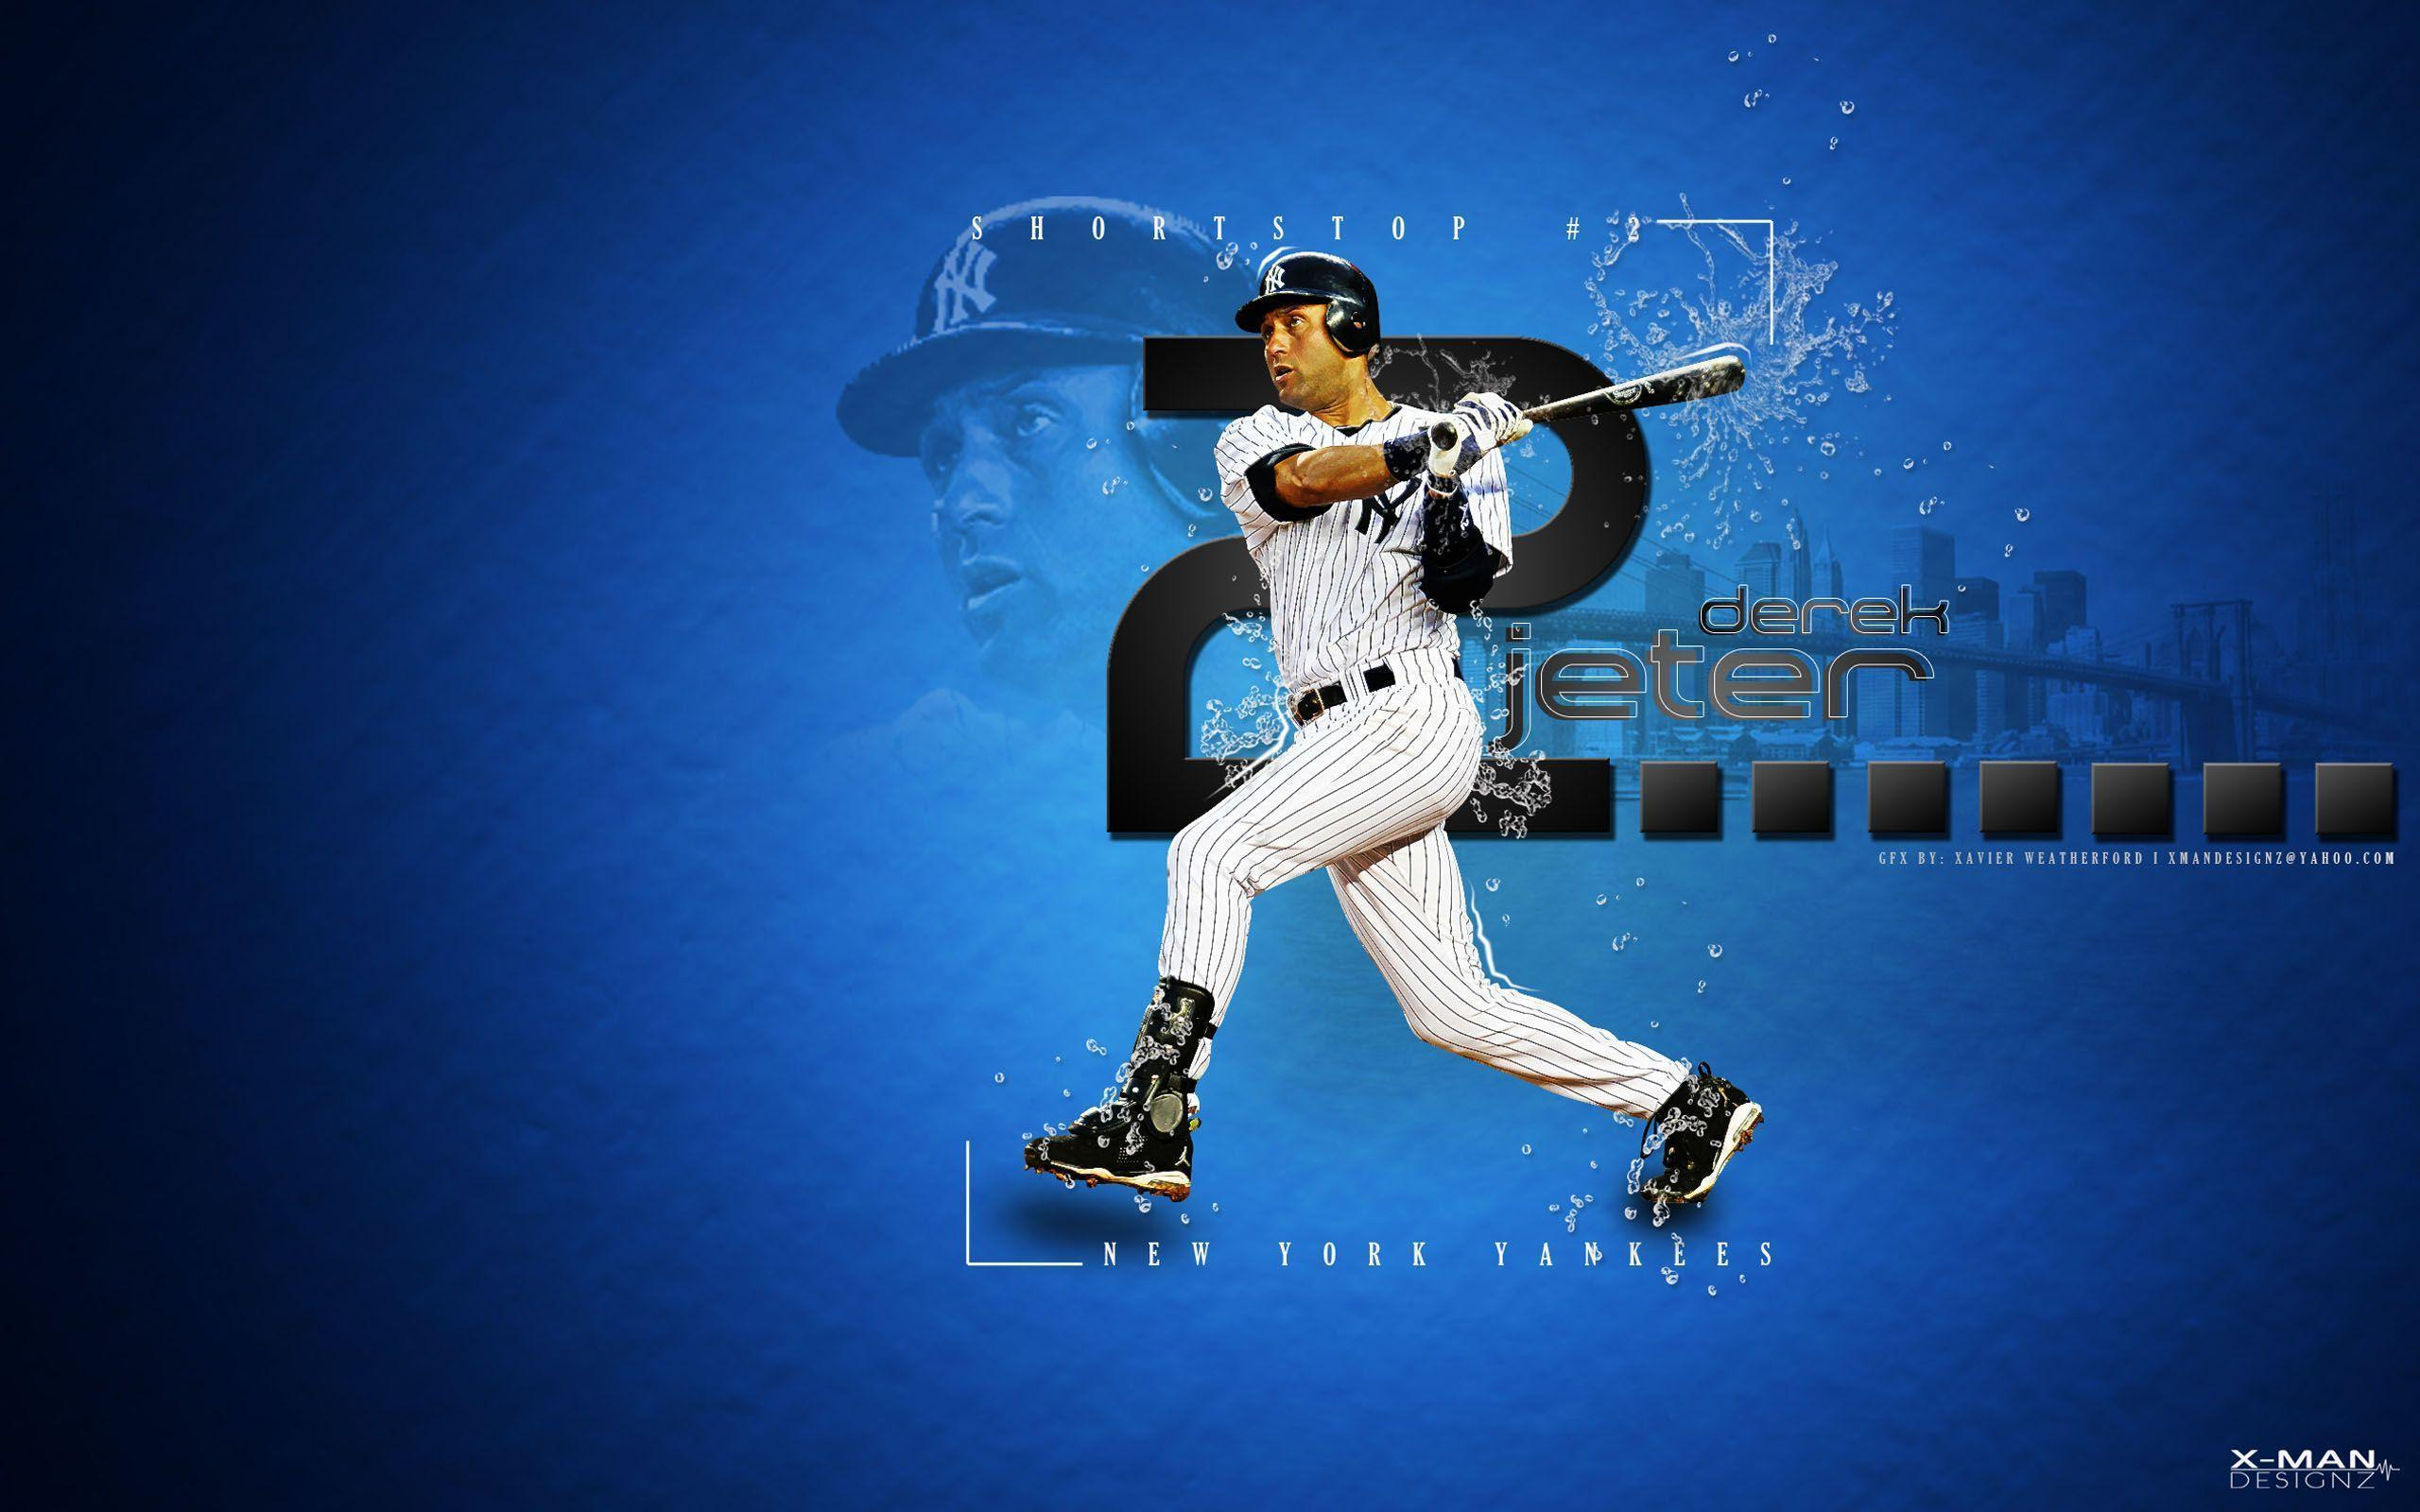 Derek Jeter New York Yankees 2560x1600 wallpapers